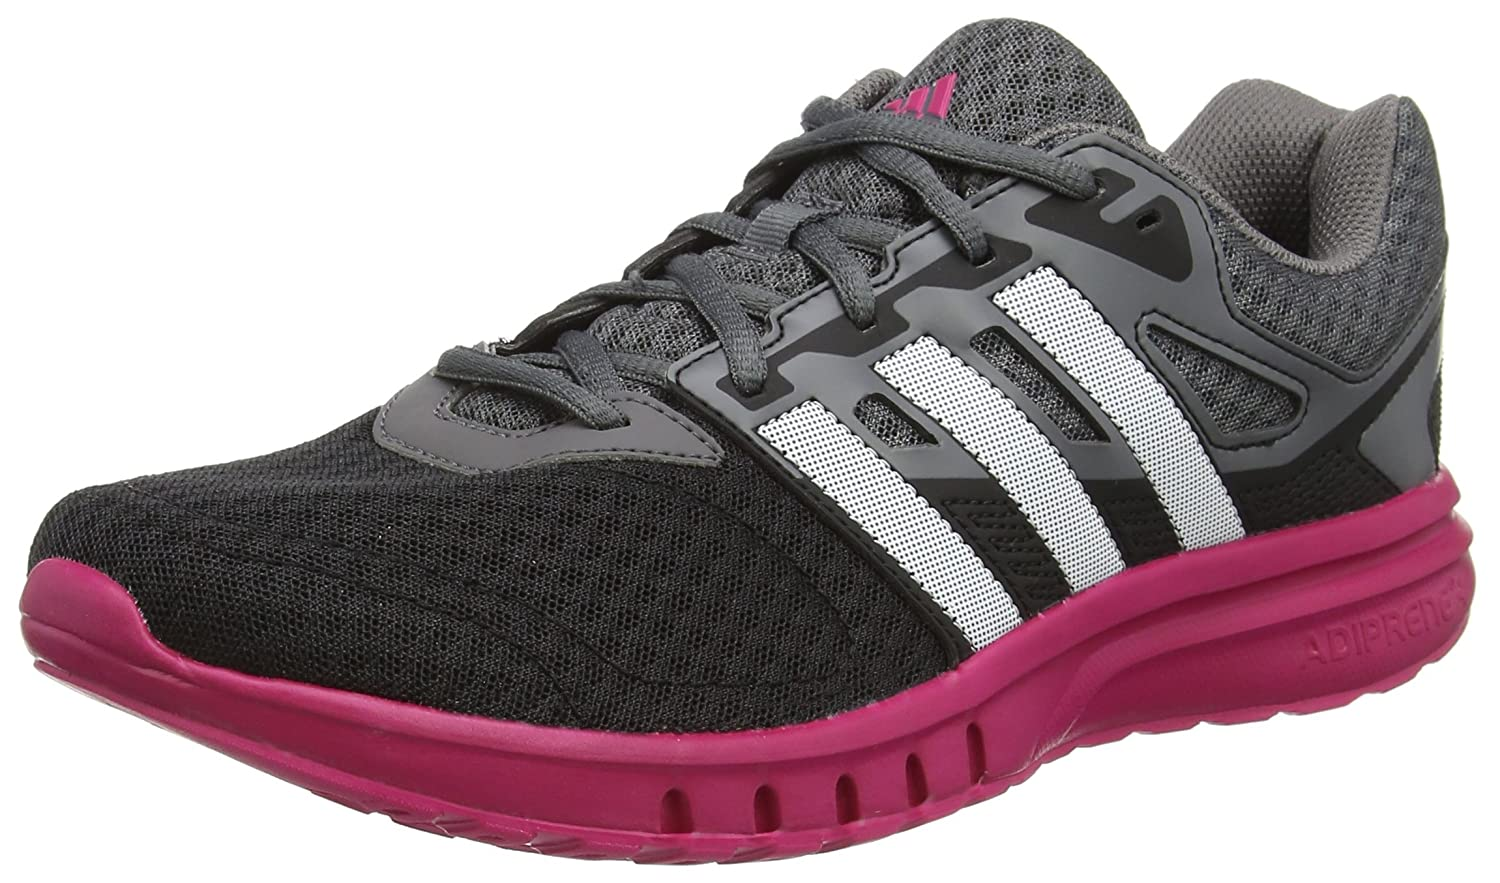 Amazon.com | adidas - Galaxy 2 W - AF5570 - Color: Black-Grey-Pink - Size: 7.0 | Fashion Sneakers